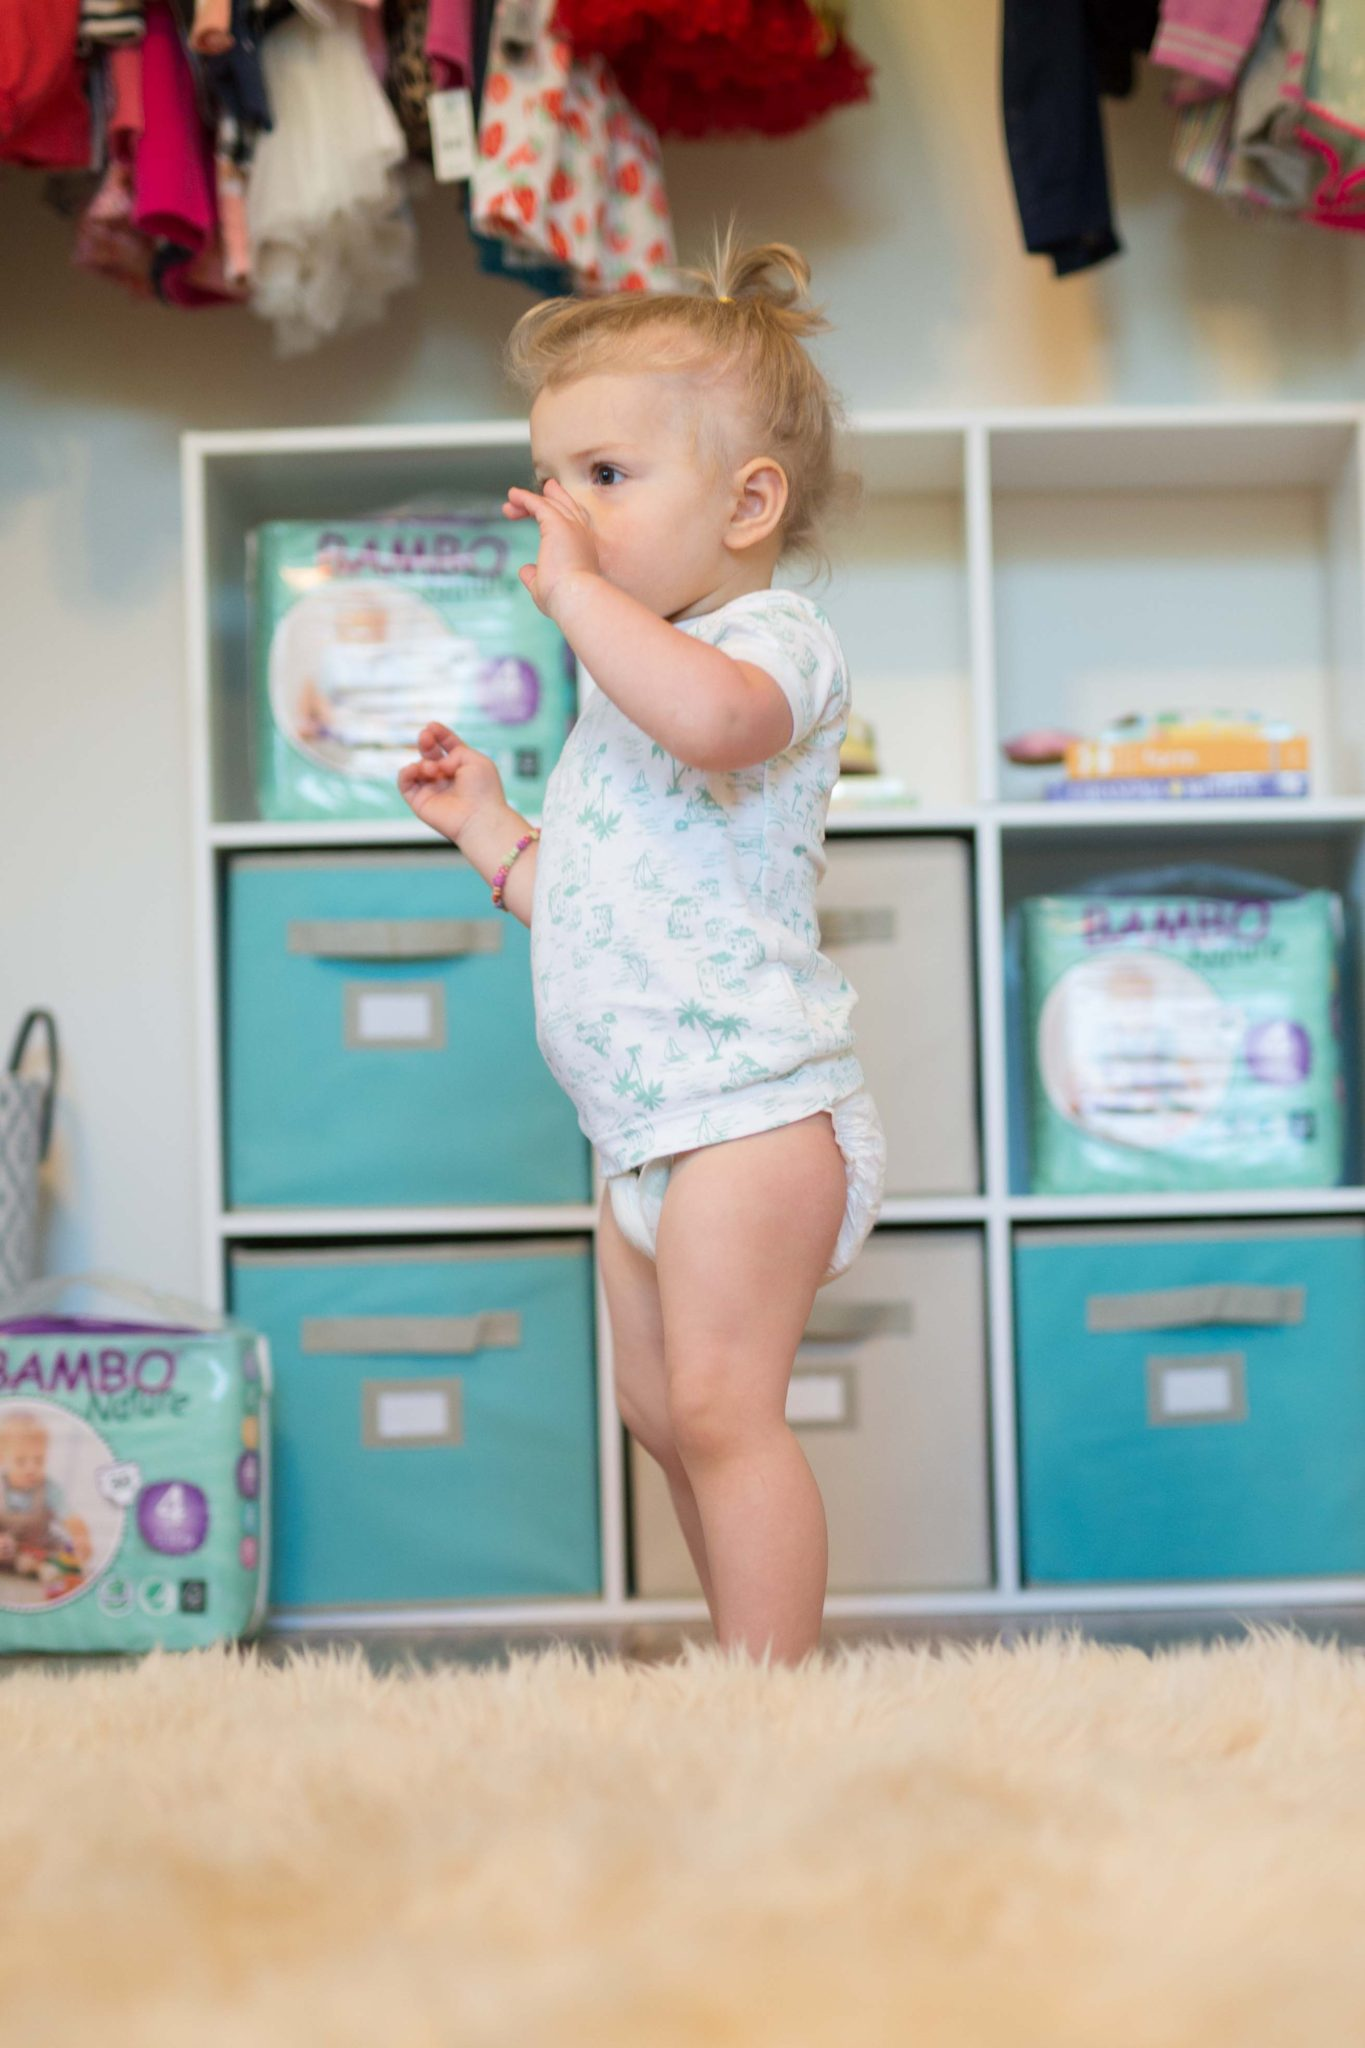 bambo nature eco friendly diaper review on allweareblog.com